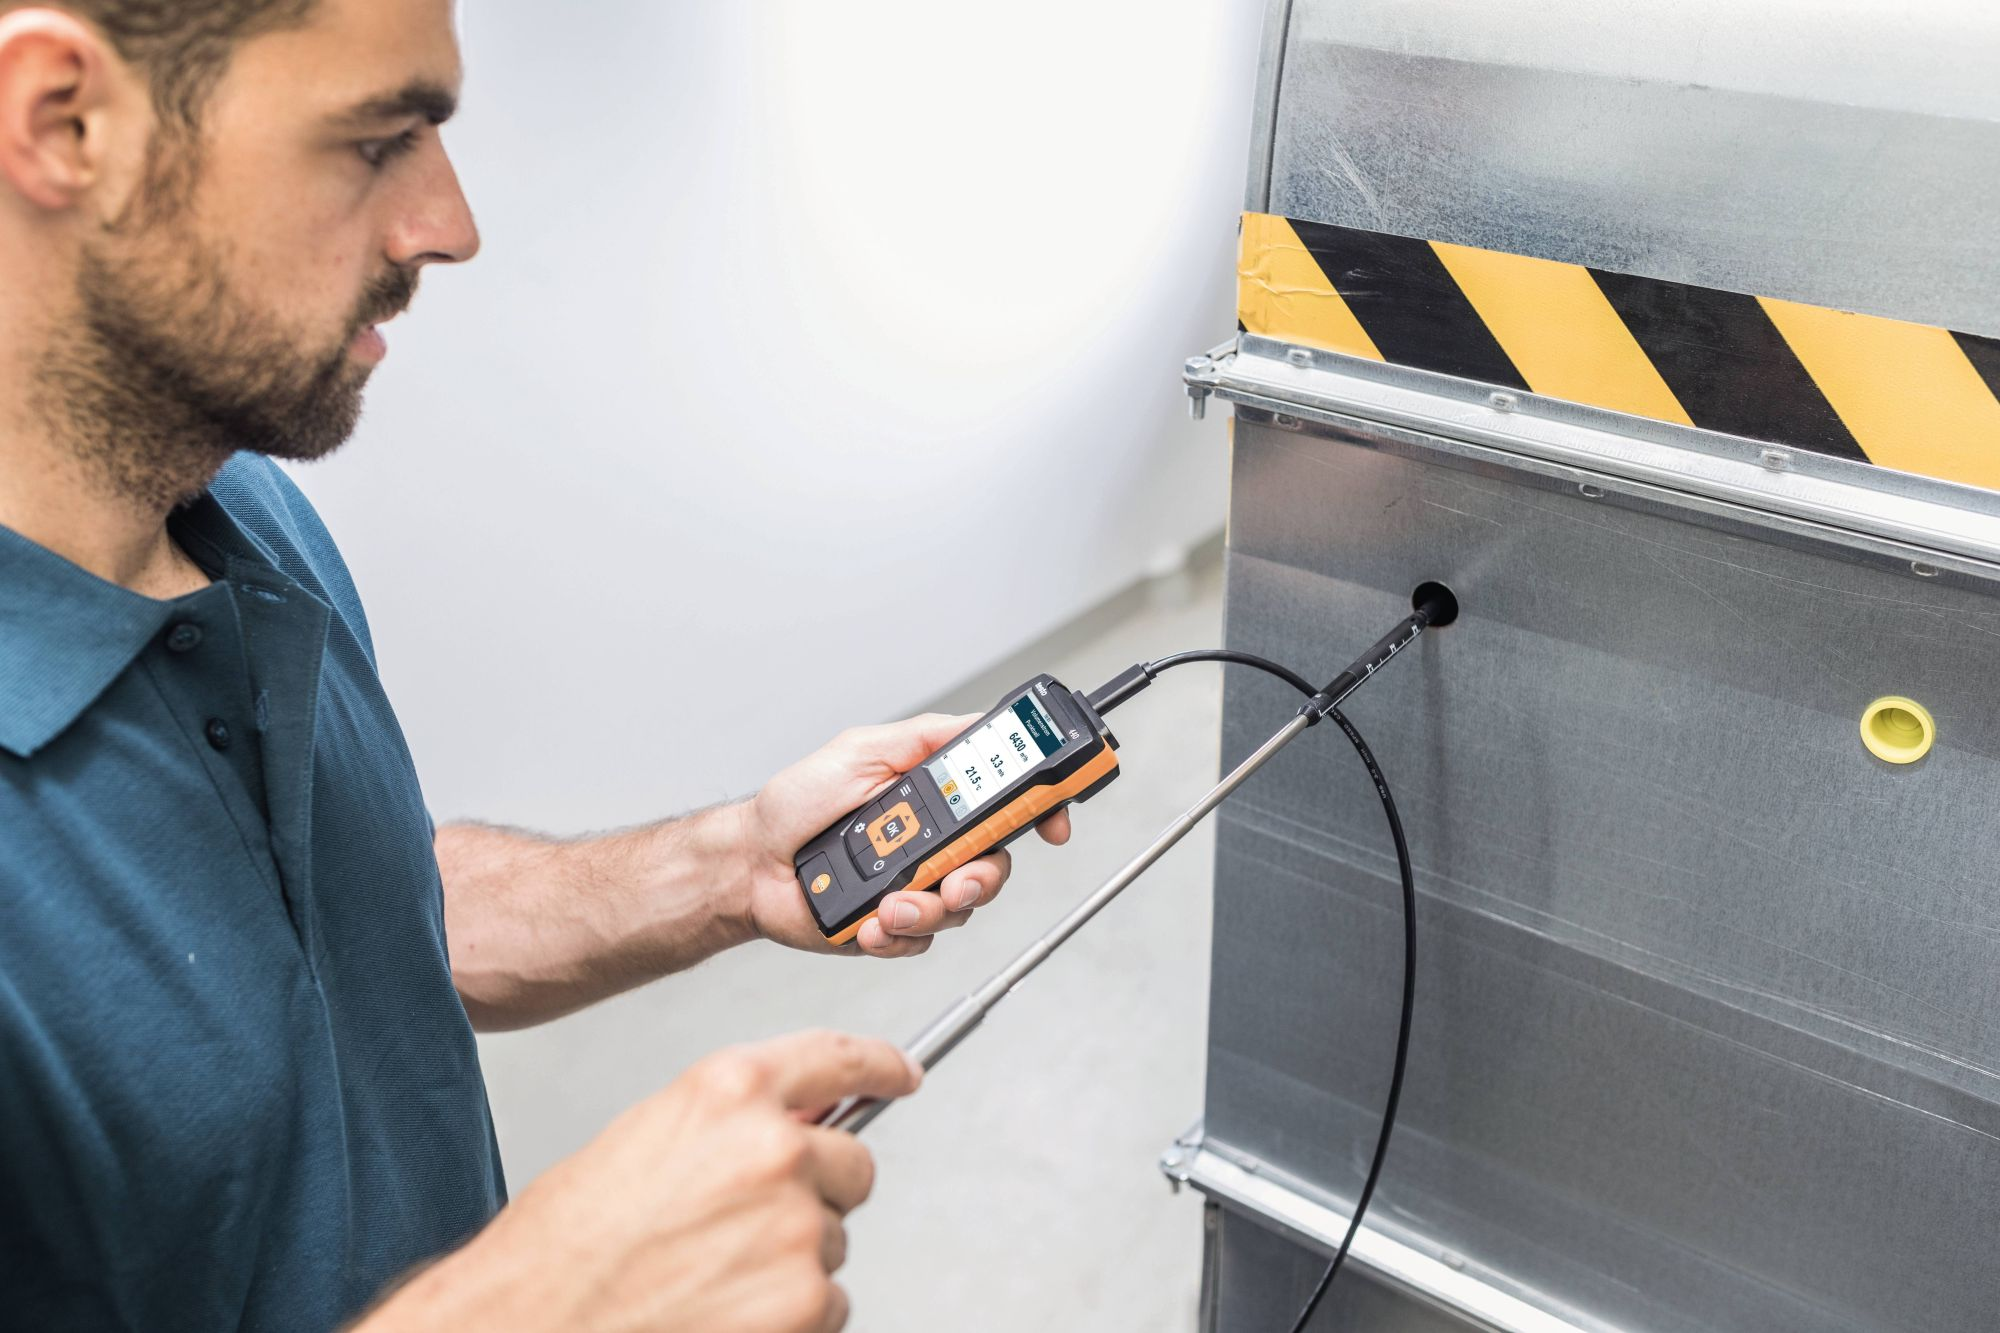 Volumetric flow measurement in ventilation ducts with hot wire probe and testo 440